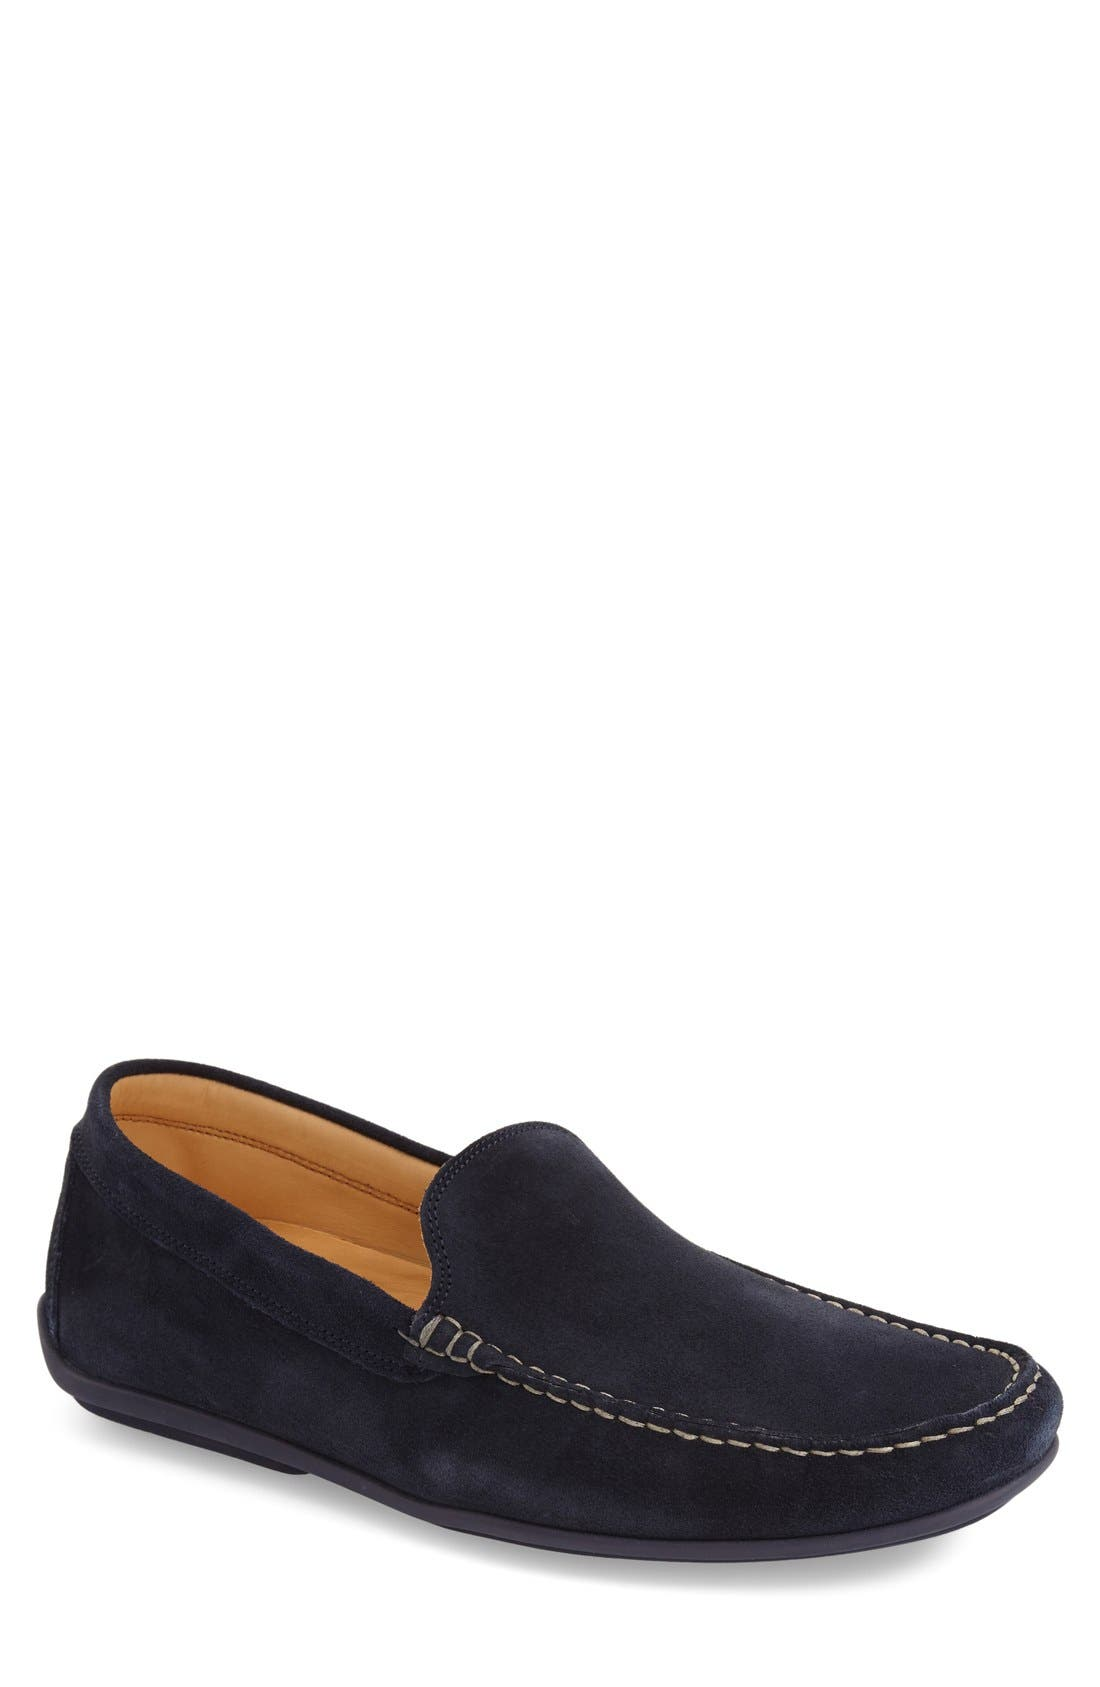 'Meridians' Loafer,                             Main thumbnail 1, color,                             Navy Suede